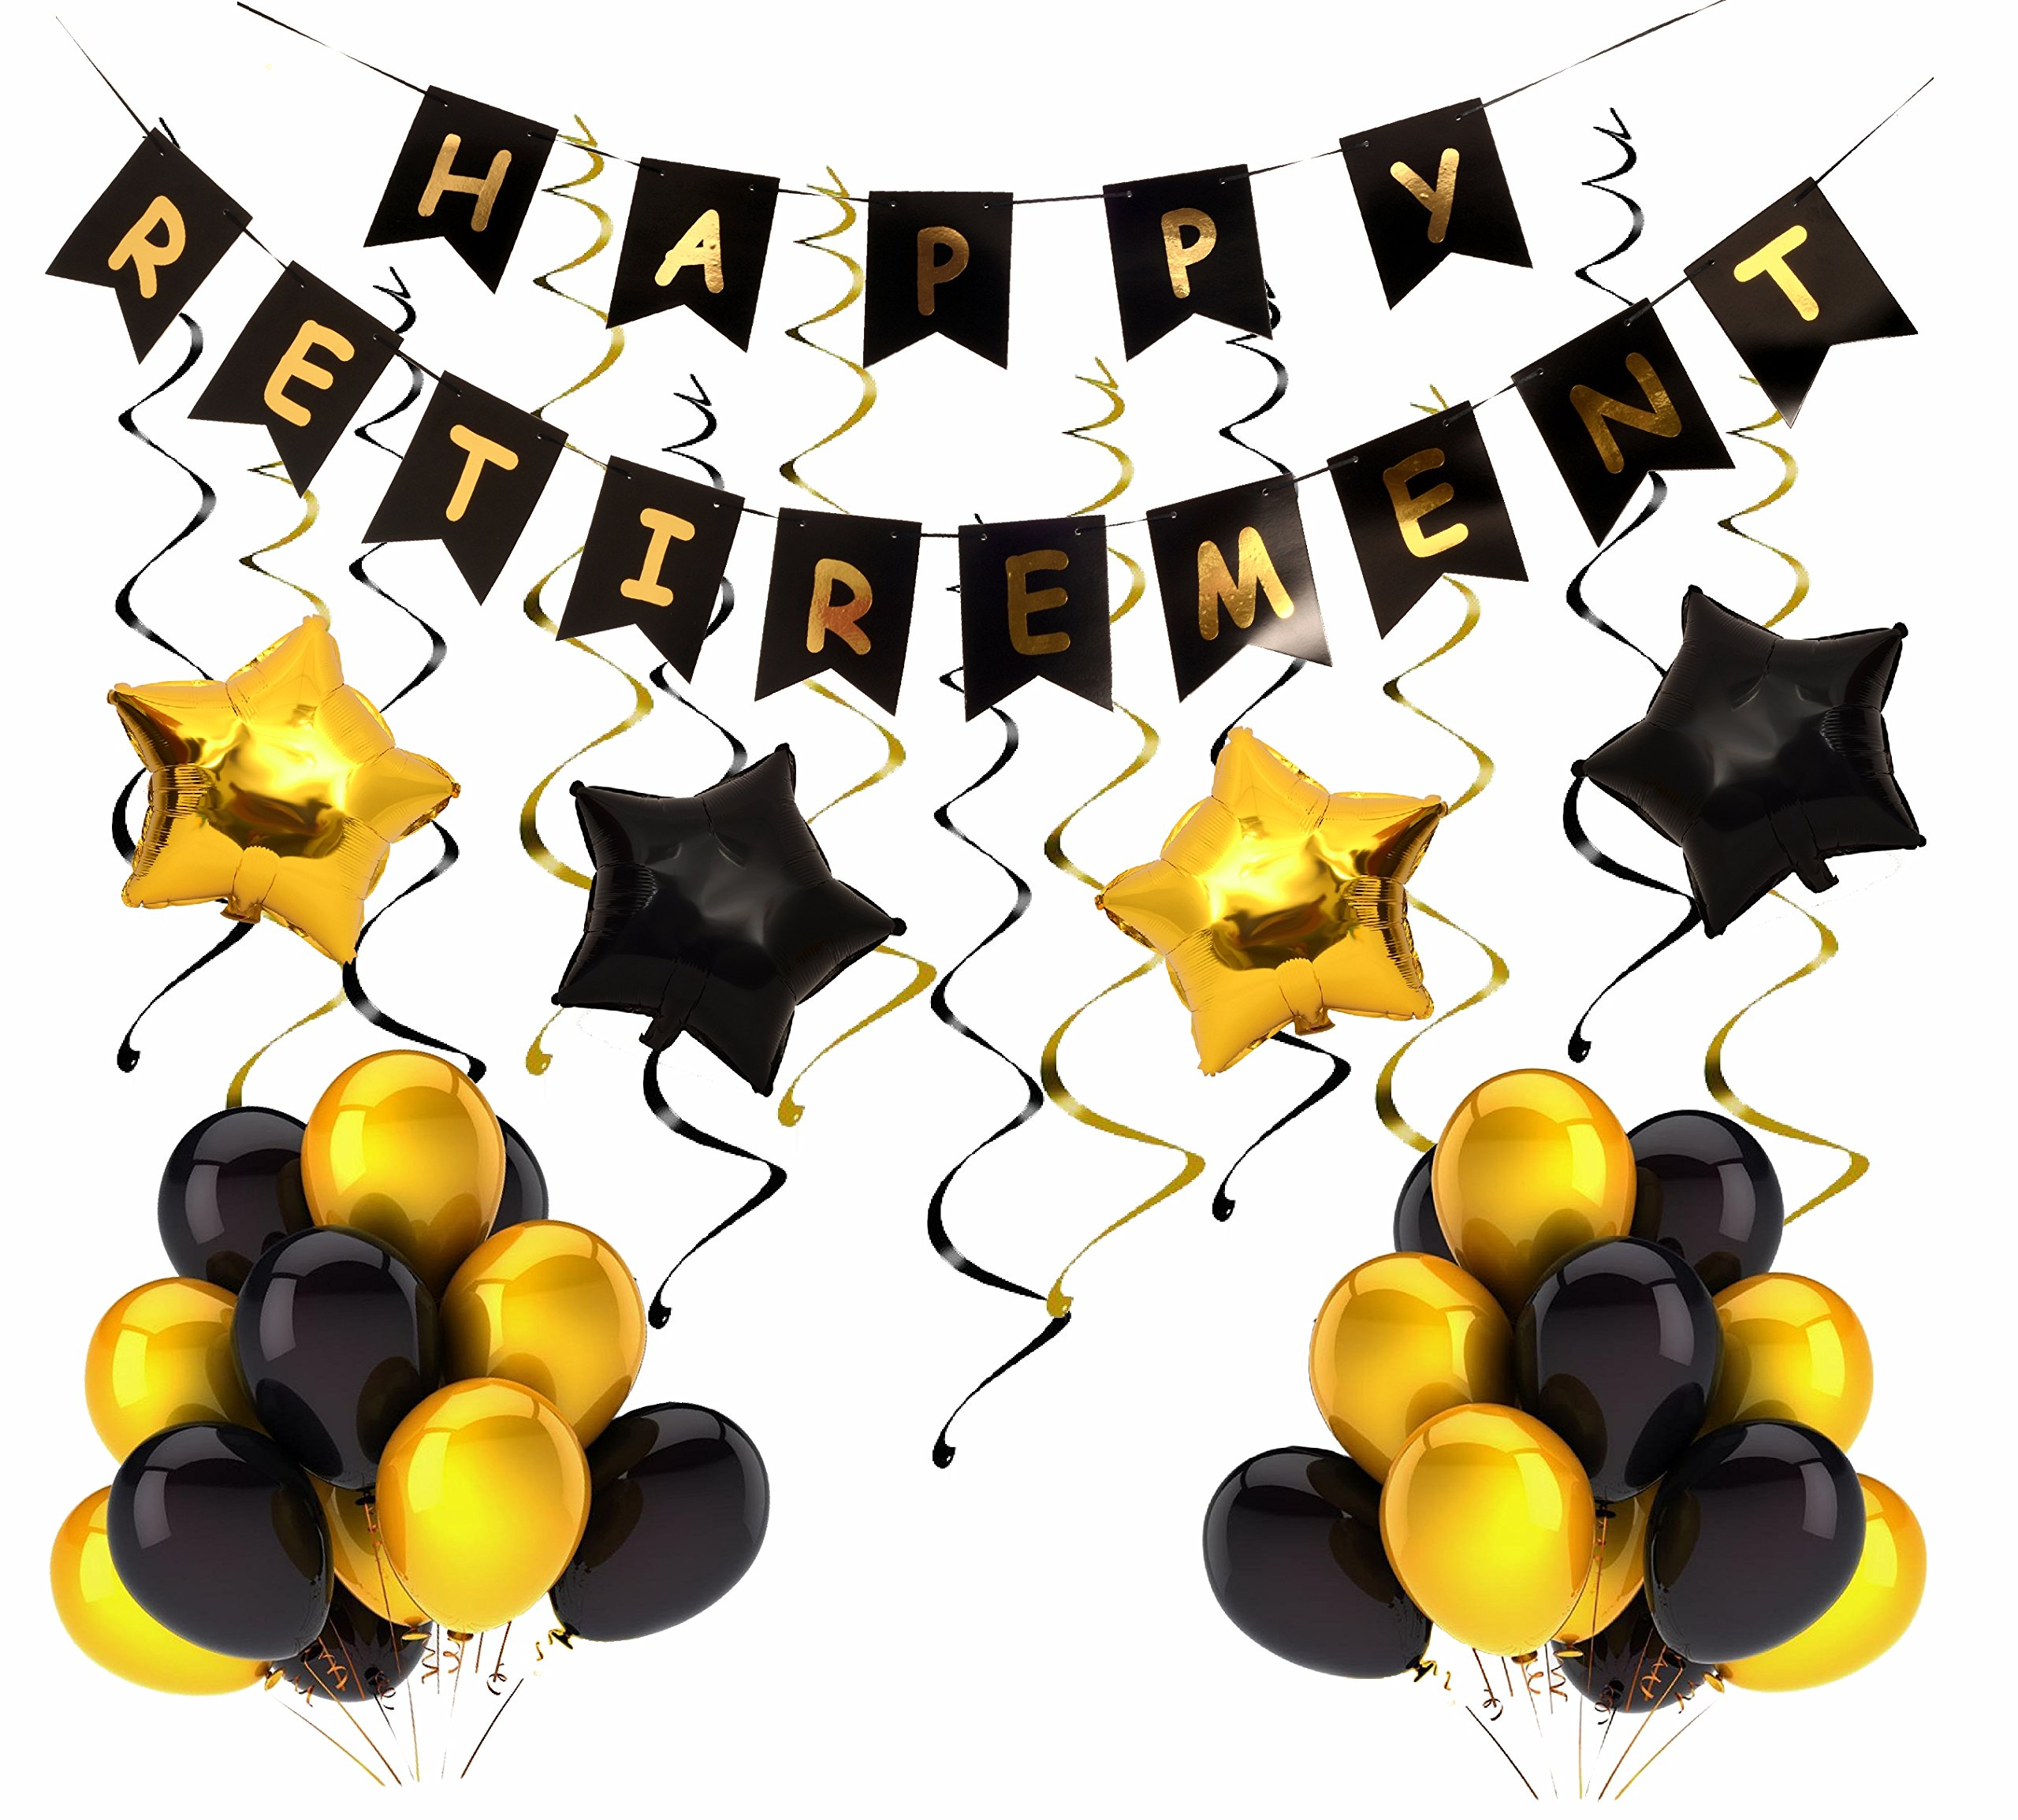 Retirement Party Decoration, Happy Retirement Decorative Banner, Happy Retirement Banner Bunting, Retirement Party Supplies Favors Gifts and Decorations (Black) (Black)